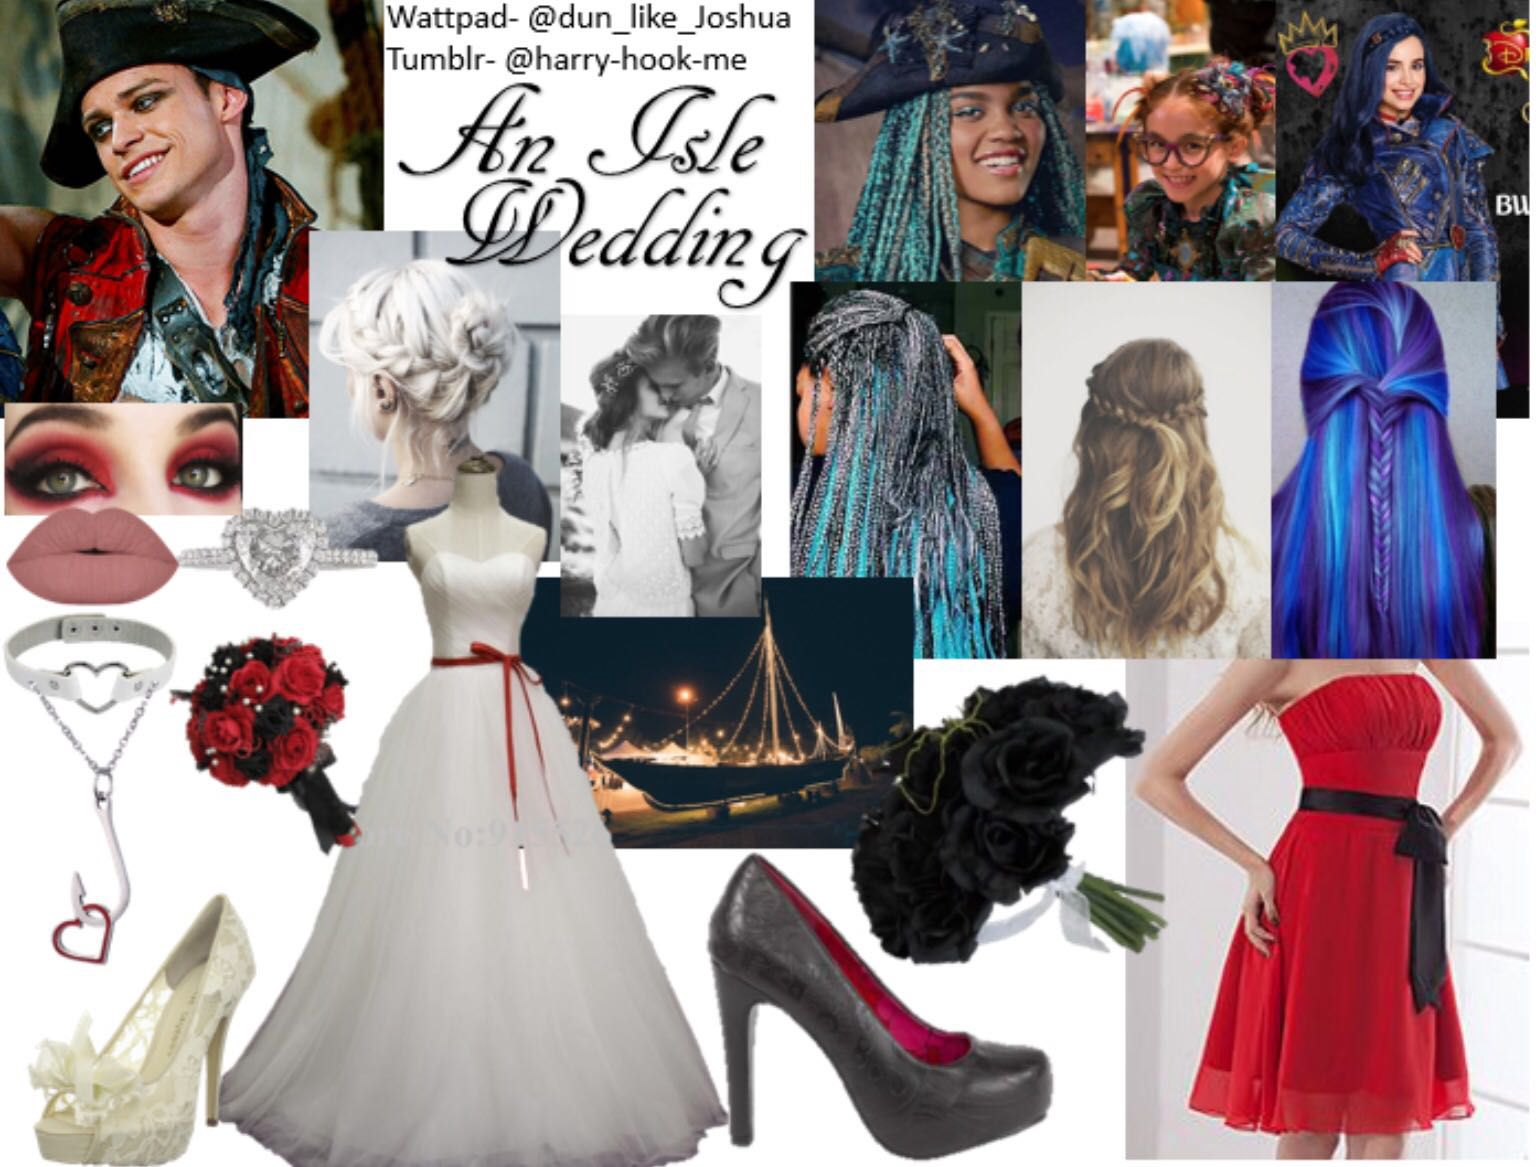 Harry Hook Imagines - An Isle Wedding - Wattpad